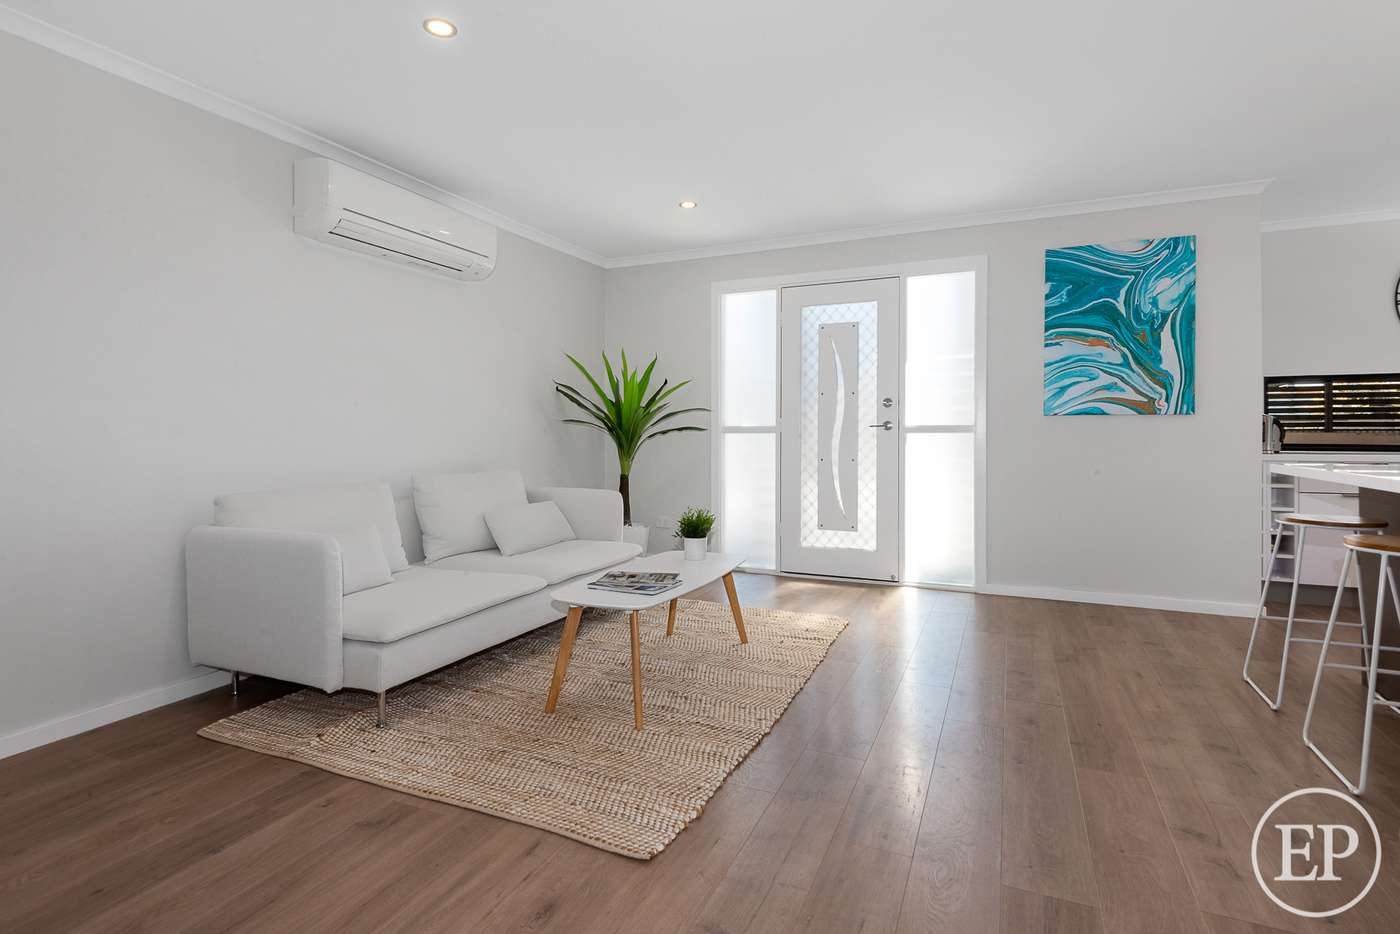 Fifth view of Homely house listing, 18 Amanda Street, Burpengary QLD 4505